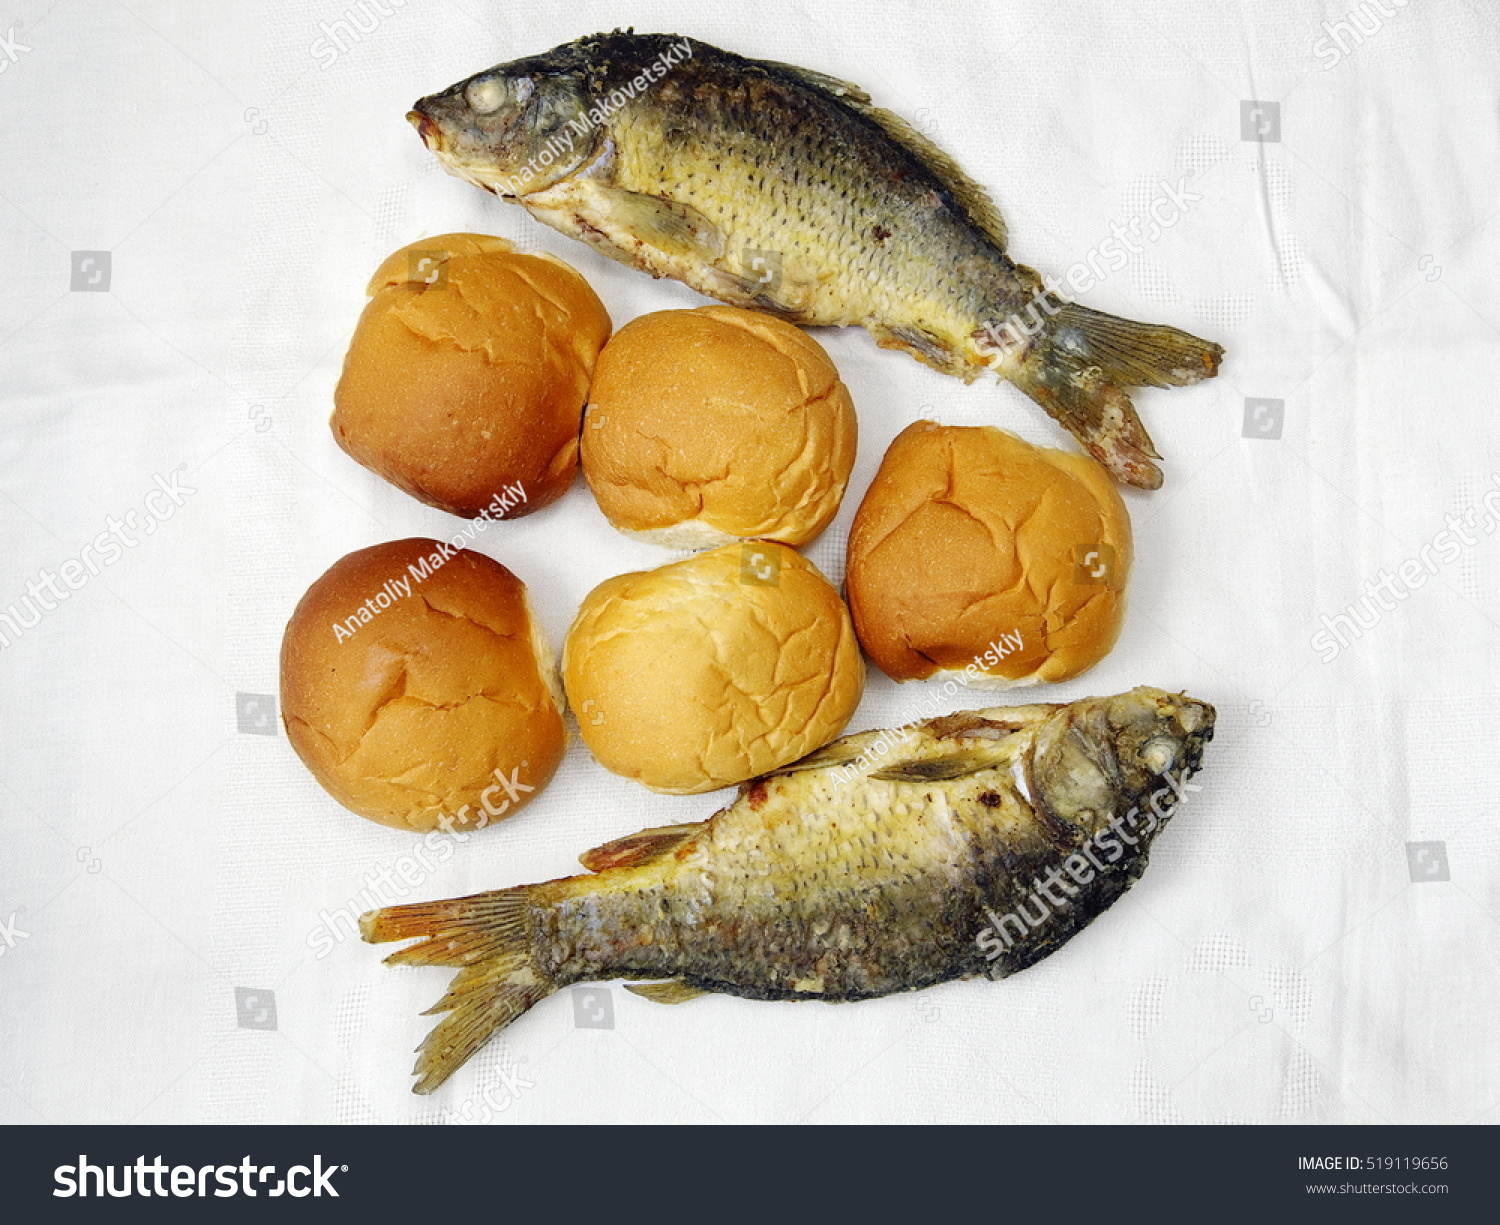 Five loaves two fishes stock photo 519119656 shutterstock for Five loaves two fish